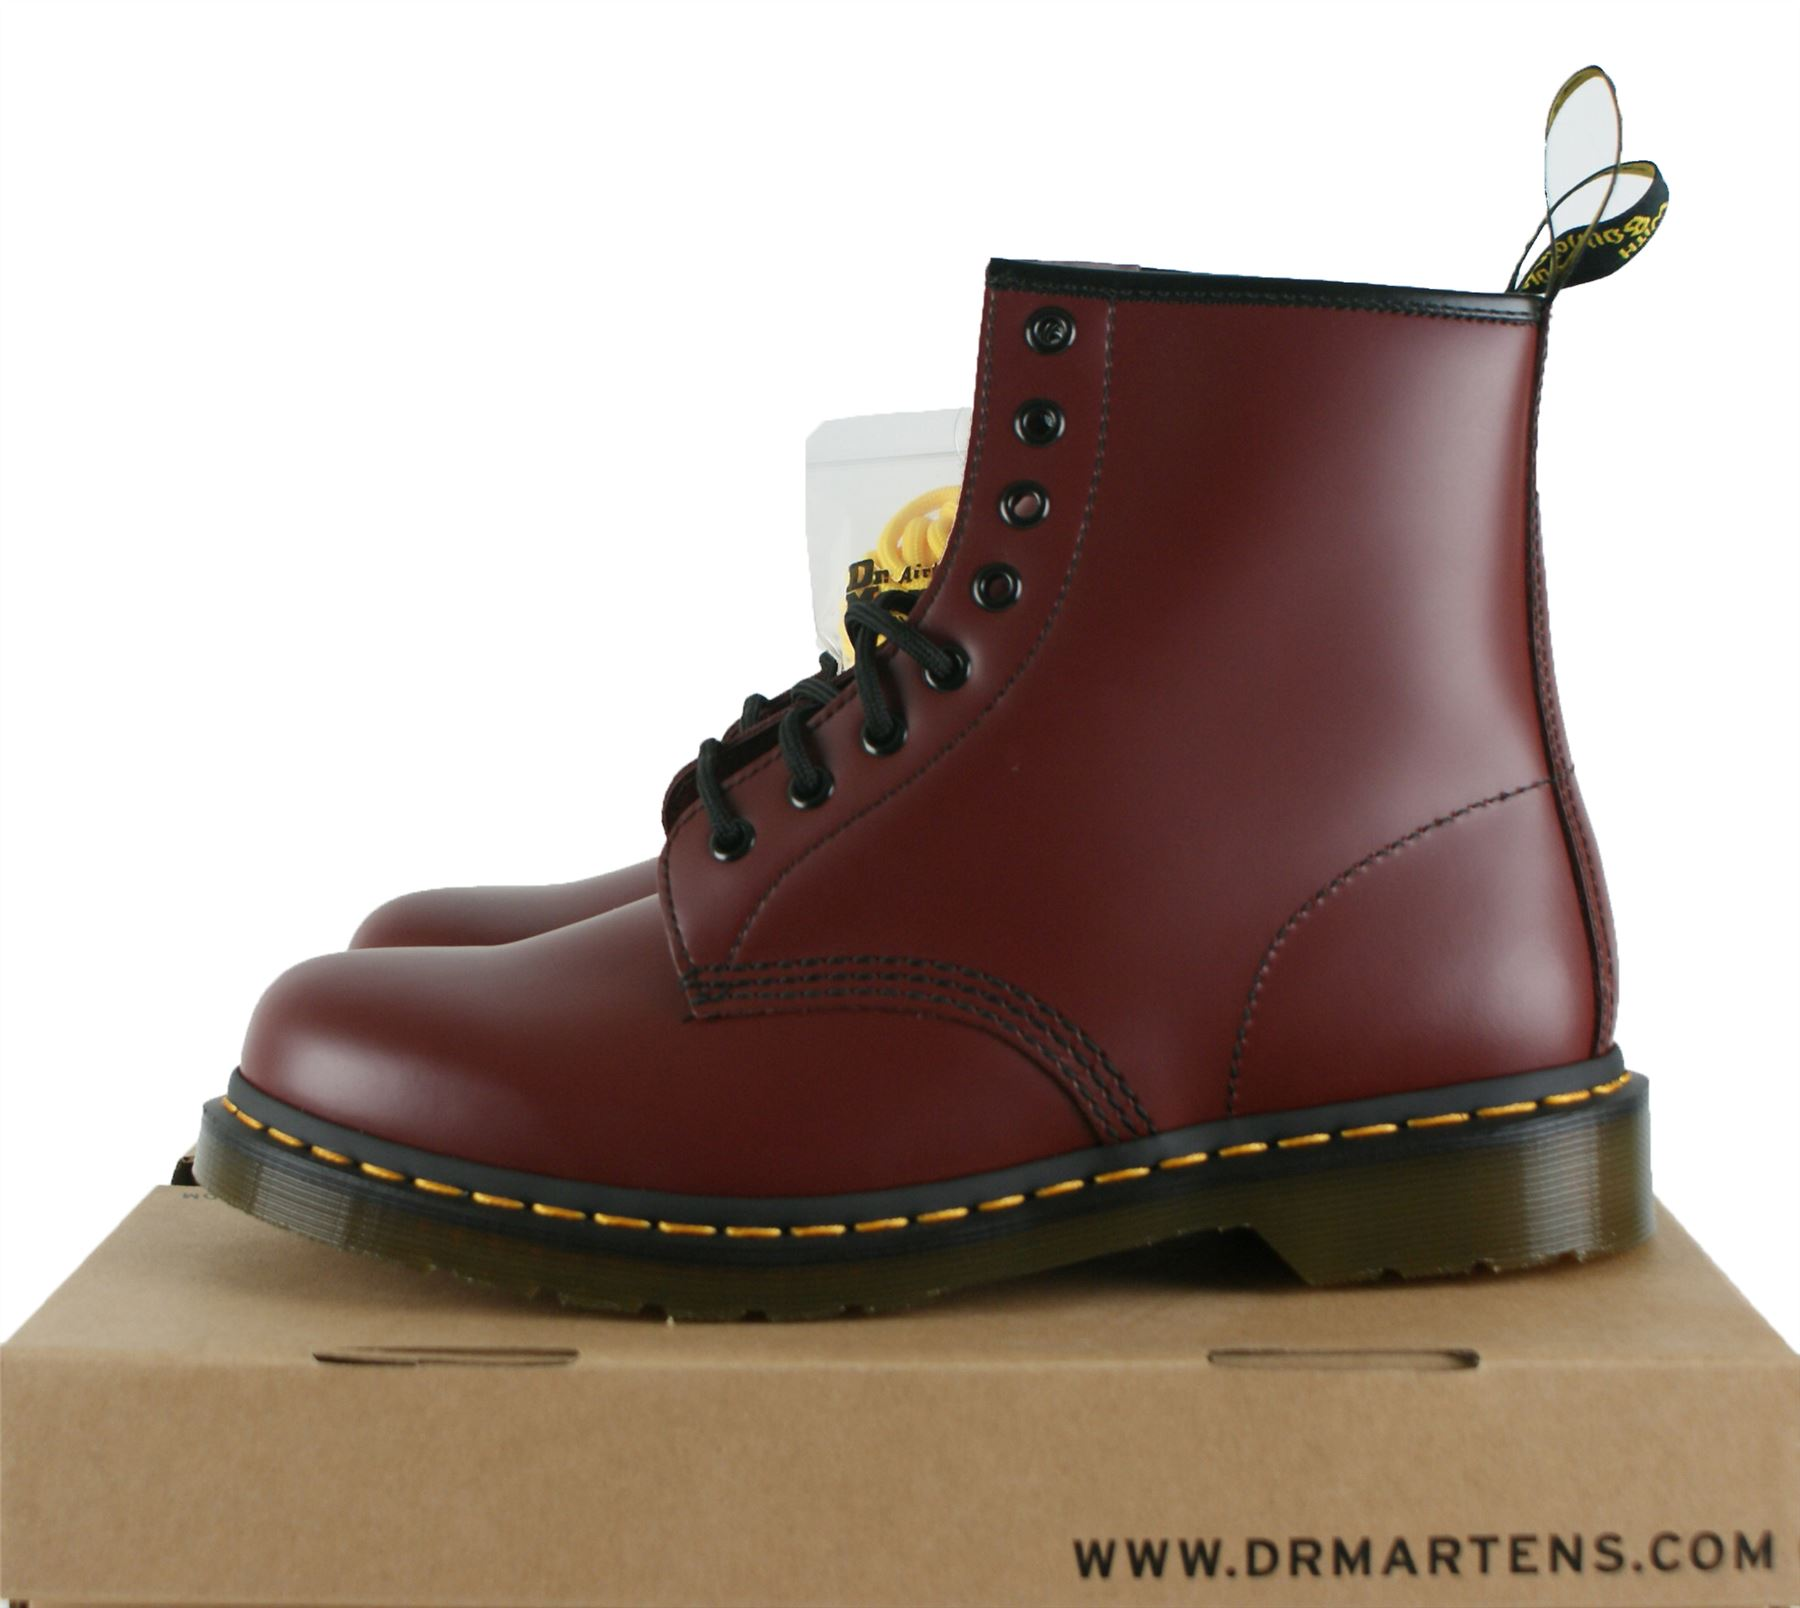 doc martens men boots brown images galleries with a bite. Black Bedroom Furniture Sets. Home Design Ideas